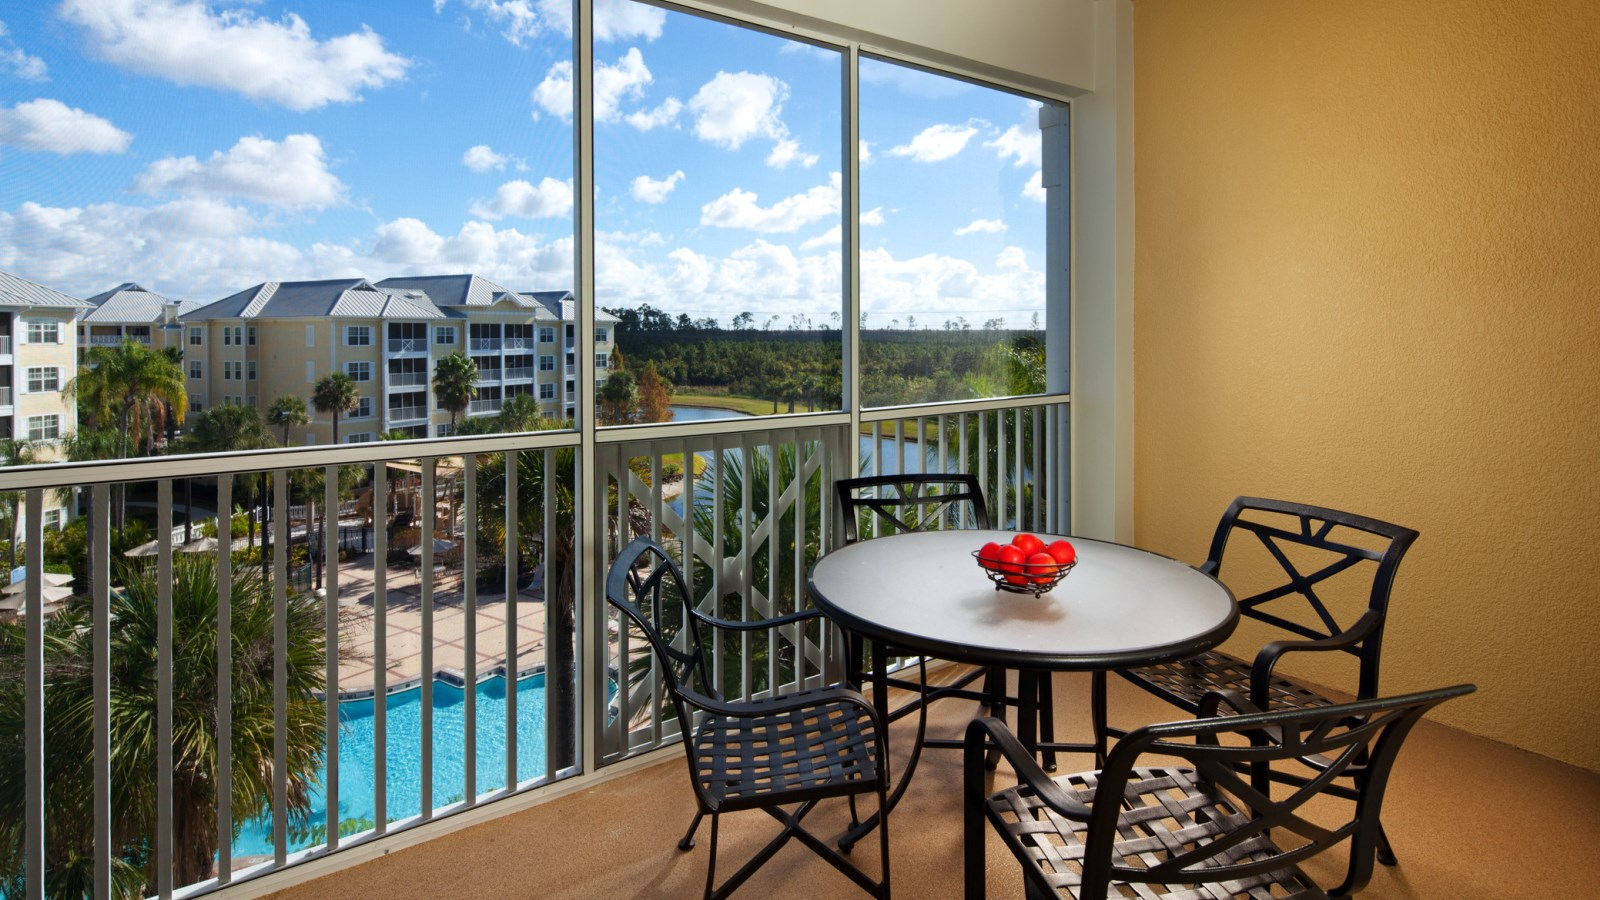 Room Amenities at Sheraton Vistana Villages Resort Villas, I-Drive/Orlando